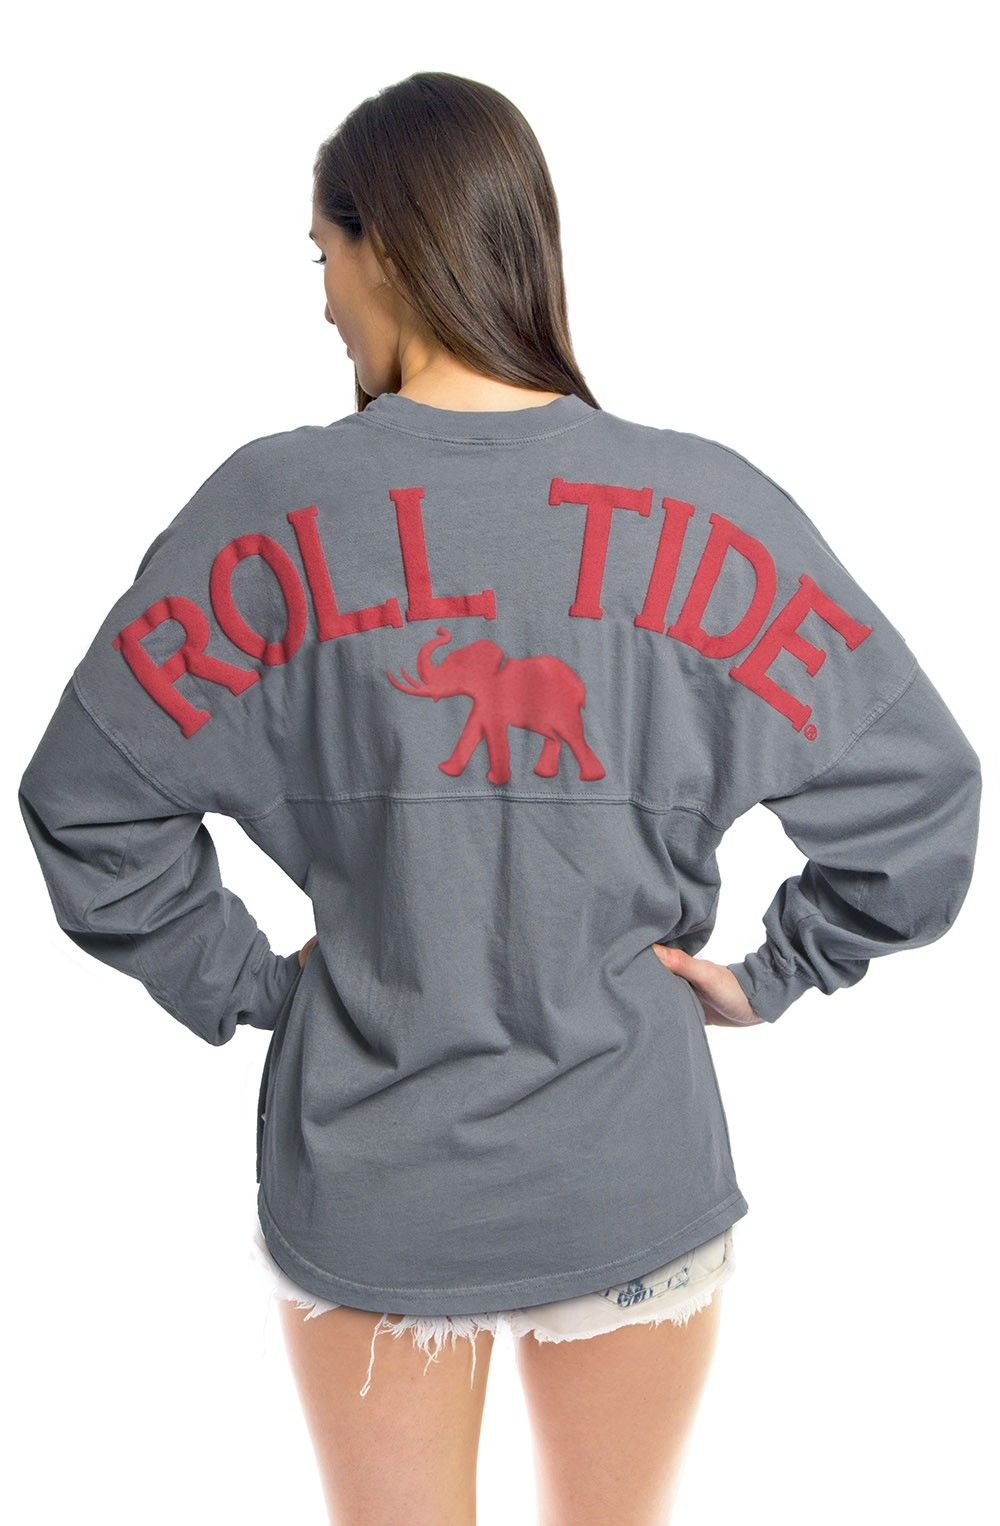 This is our famous spirit jersey. The shirt is made of 100% cotton.  Remember the spirit jerseys fit very large.  39.99 e65d0dc71